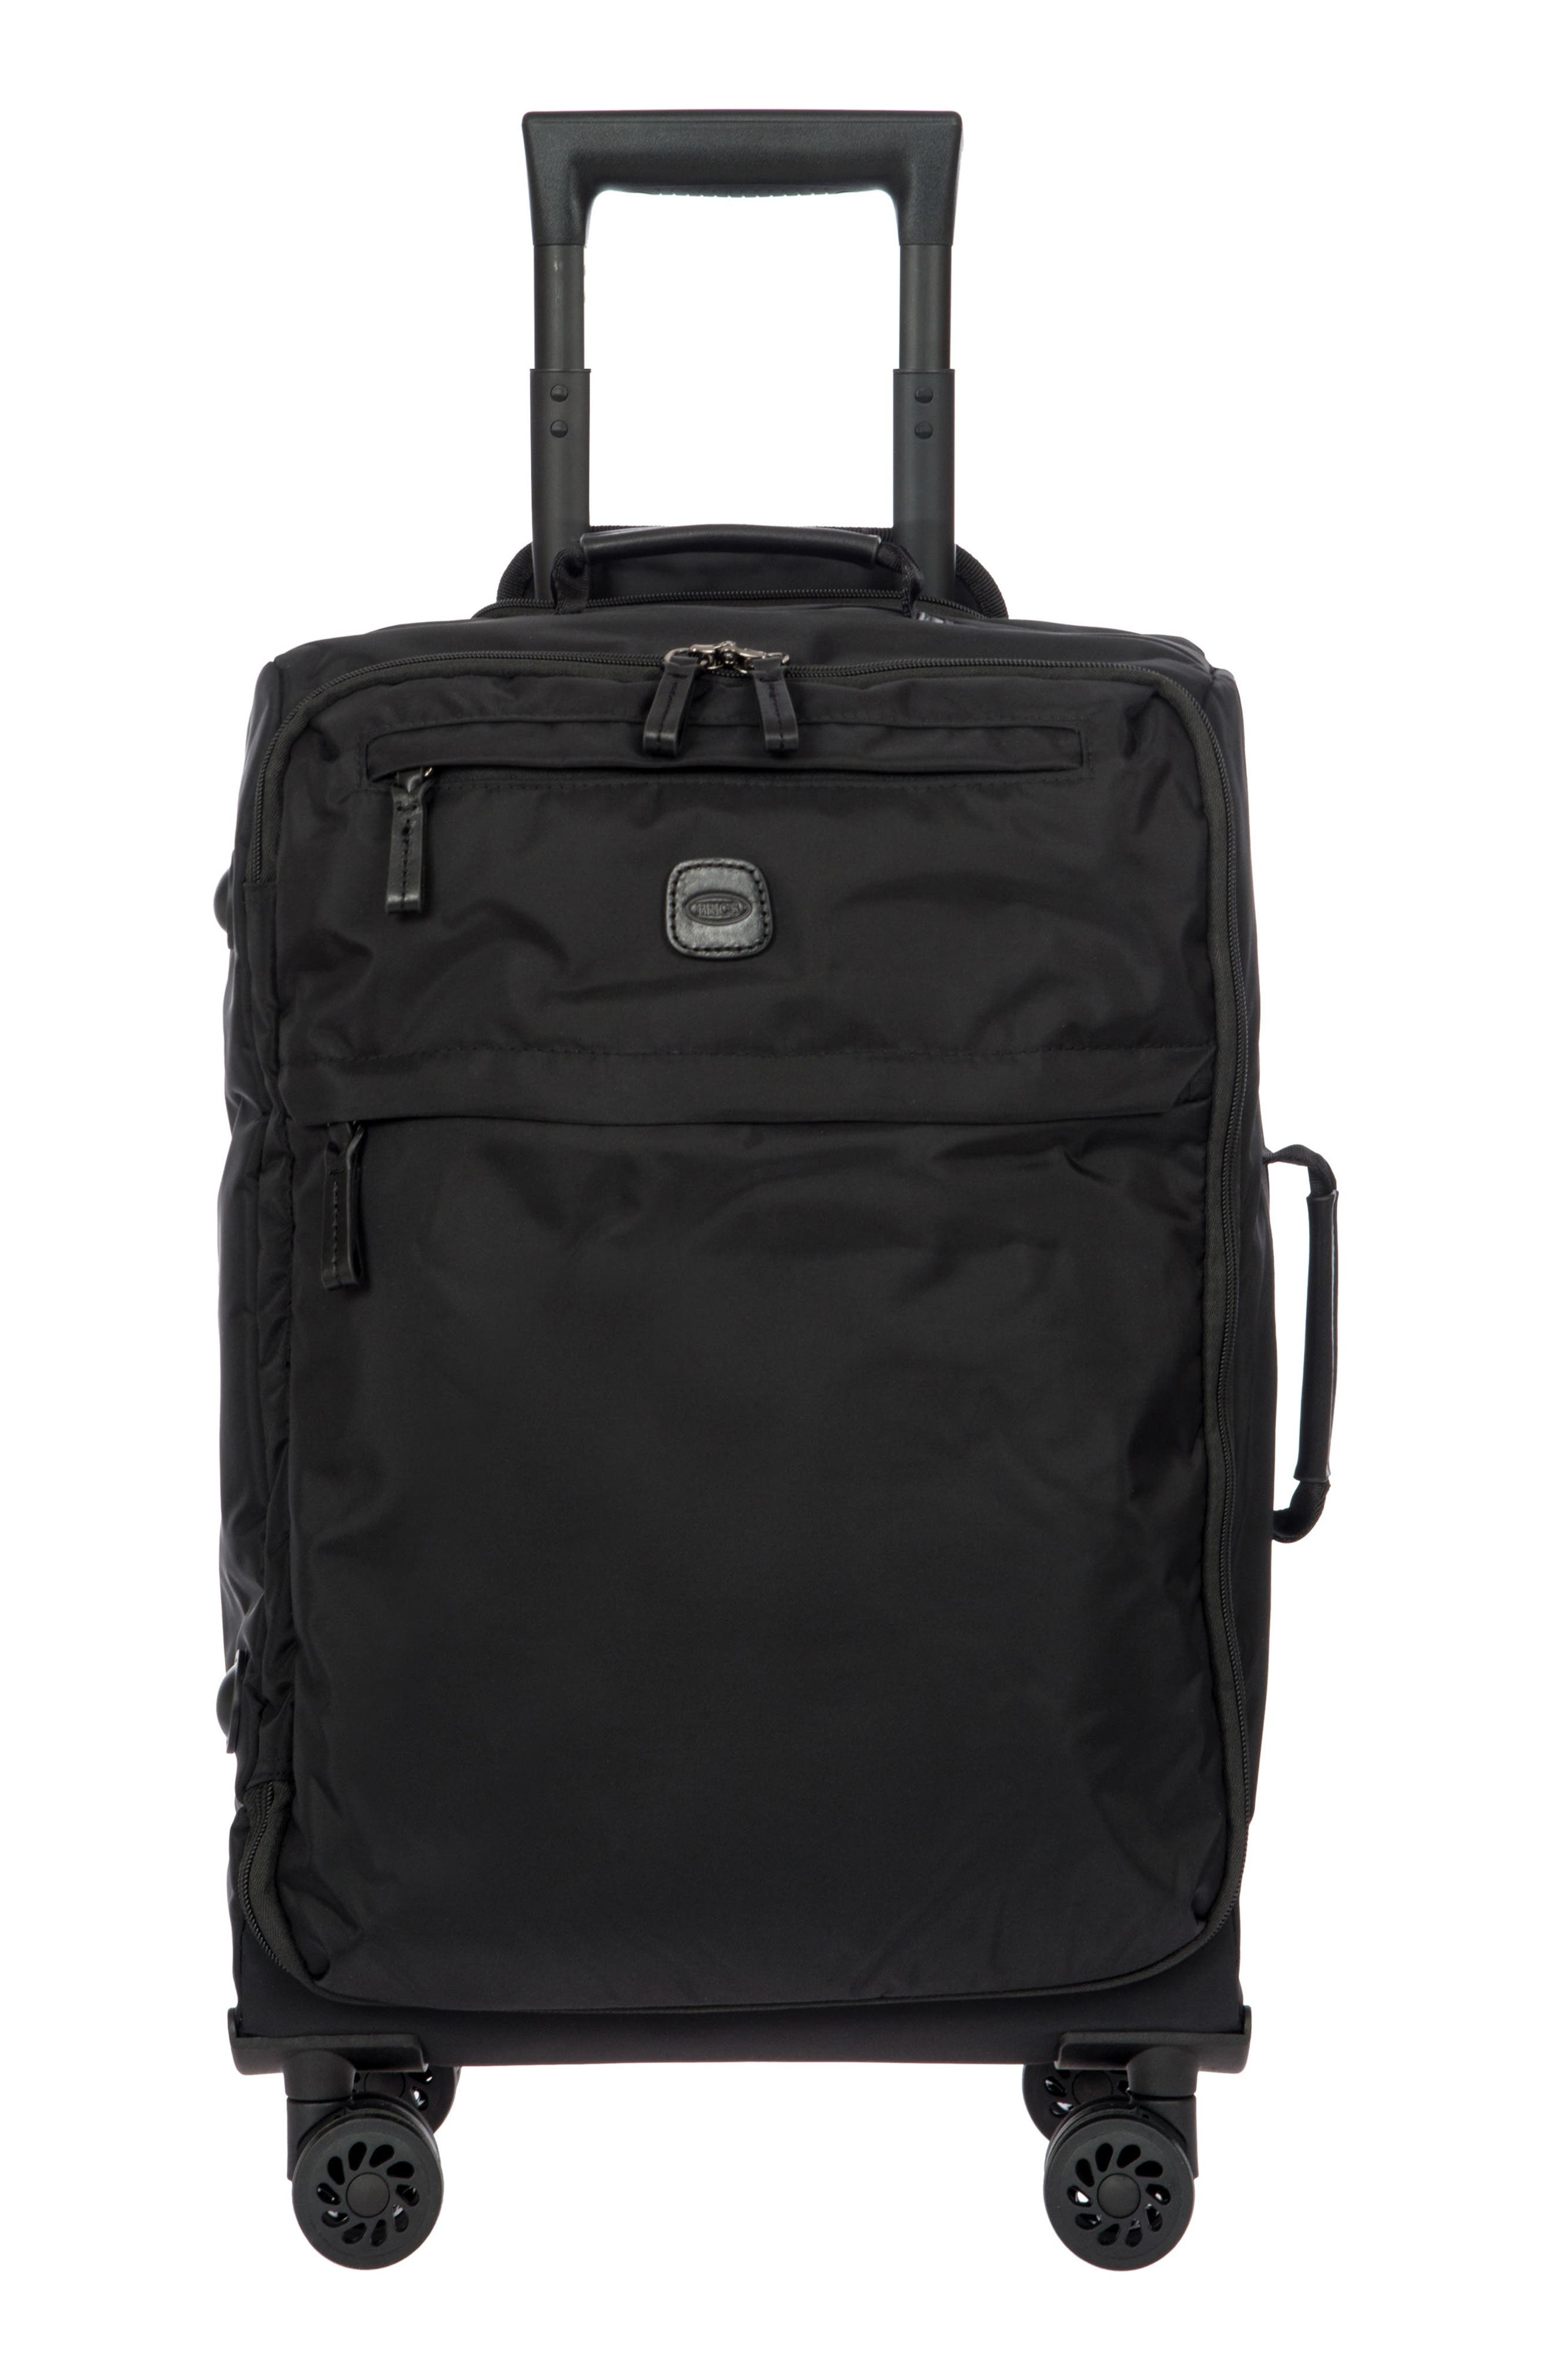 bric 39 s x bag 21 inch spinner carry on cheap price. Black Bedroom Furniture Sets. Home Design Ideas